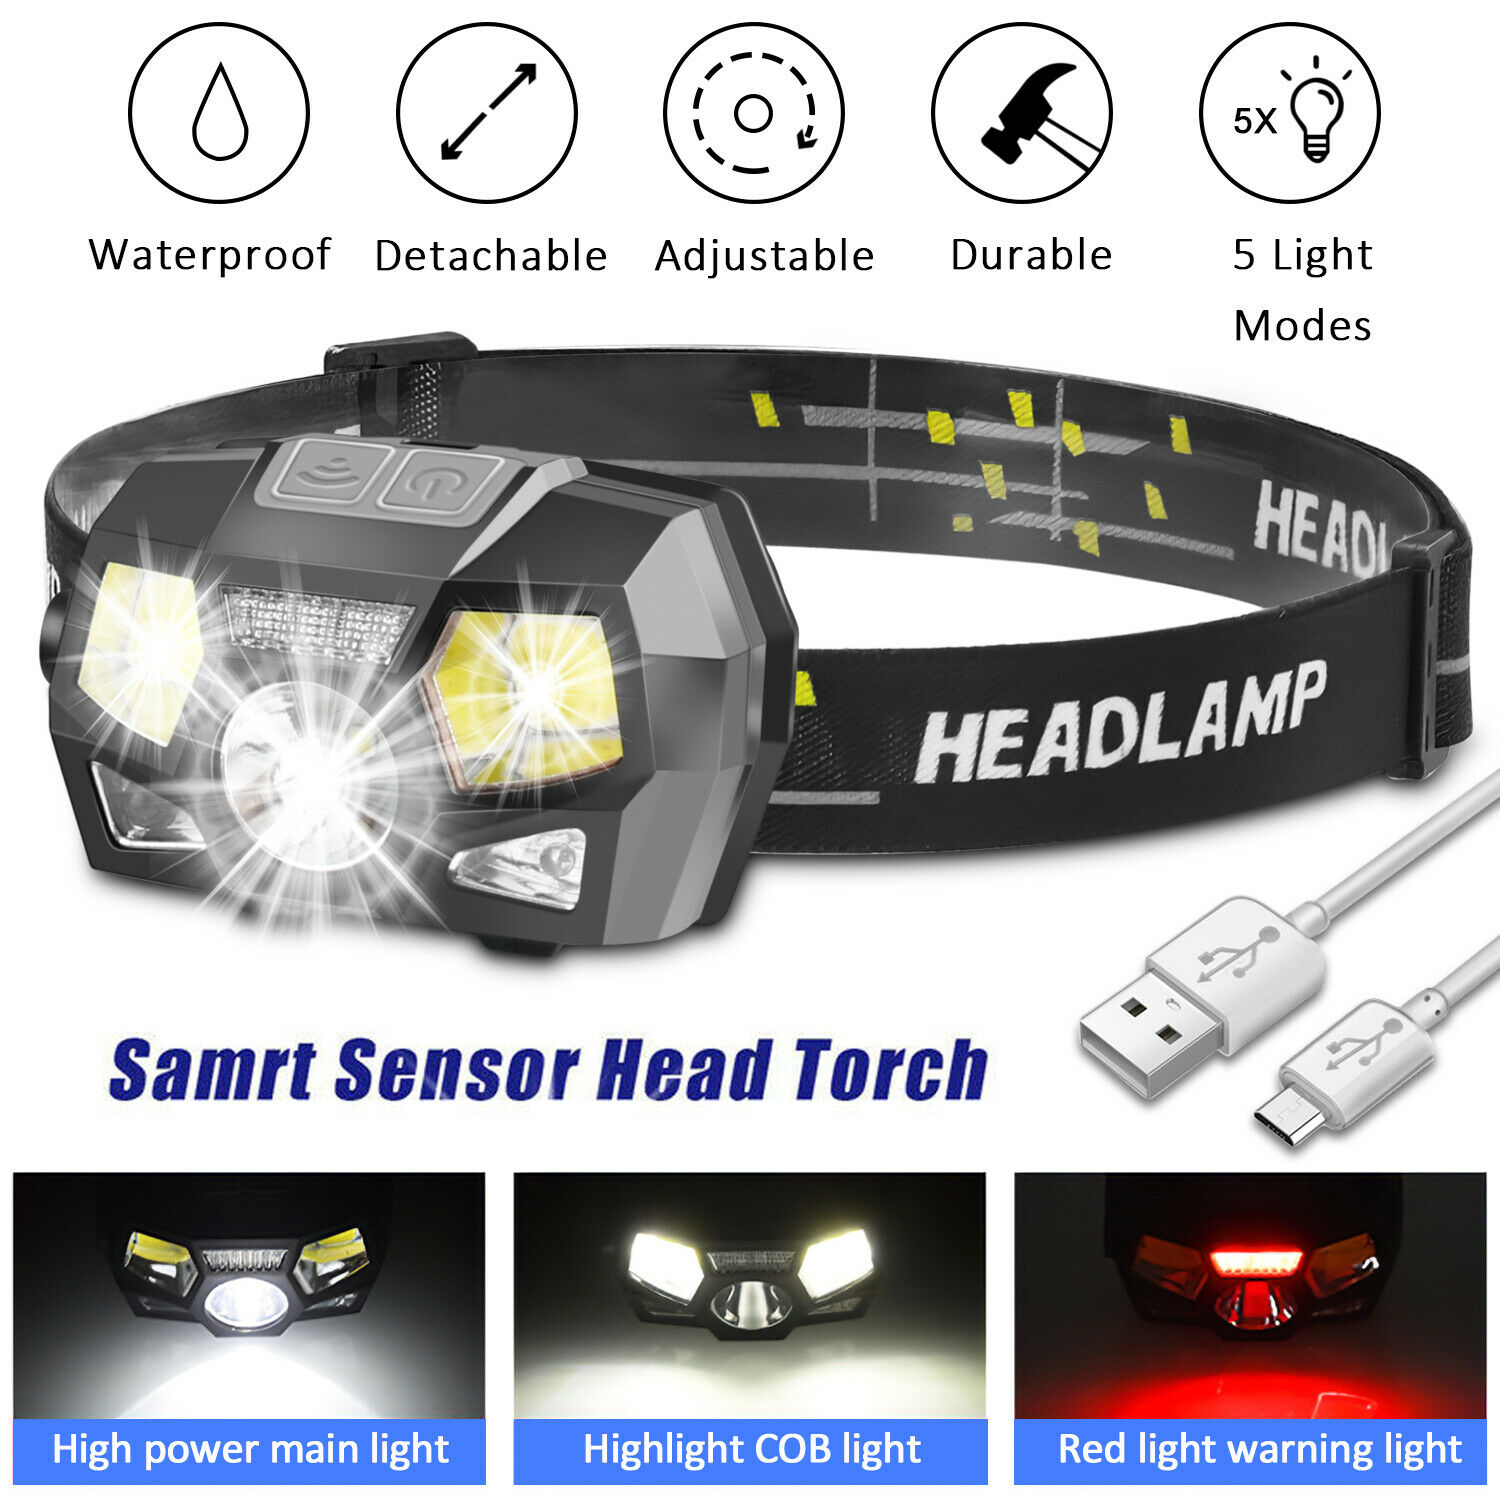 LED Headlamp USB Rechargeable Headlight Head Lamp Flashlight Camping Waterproof